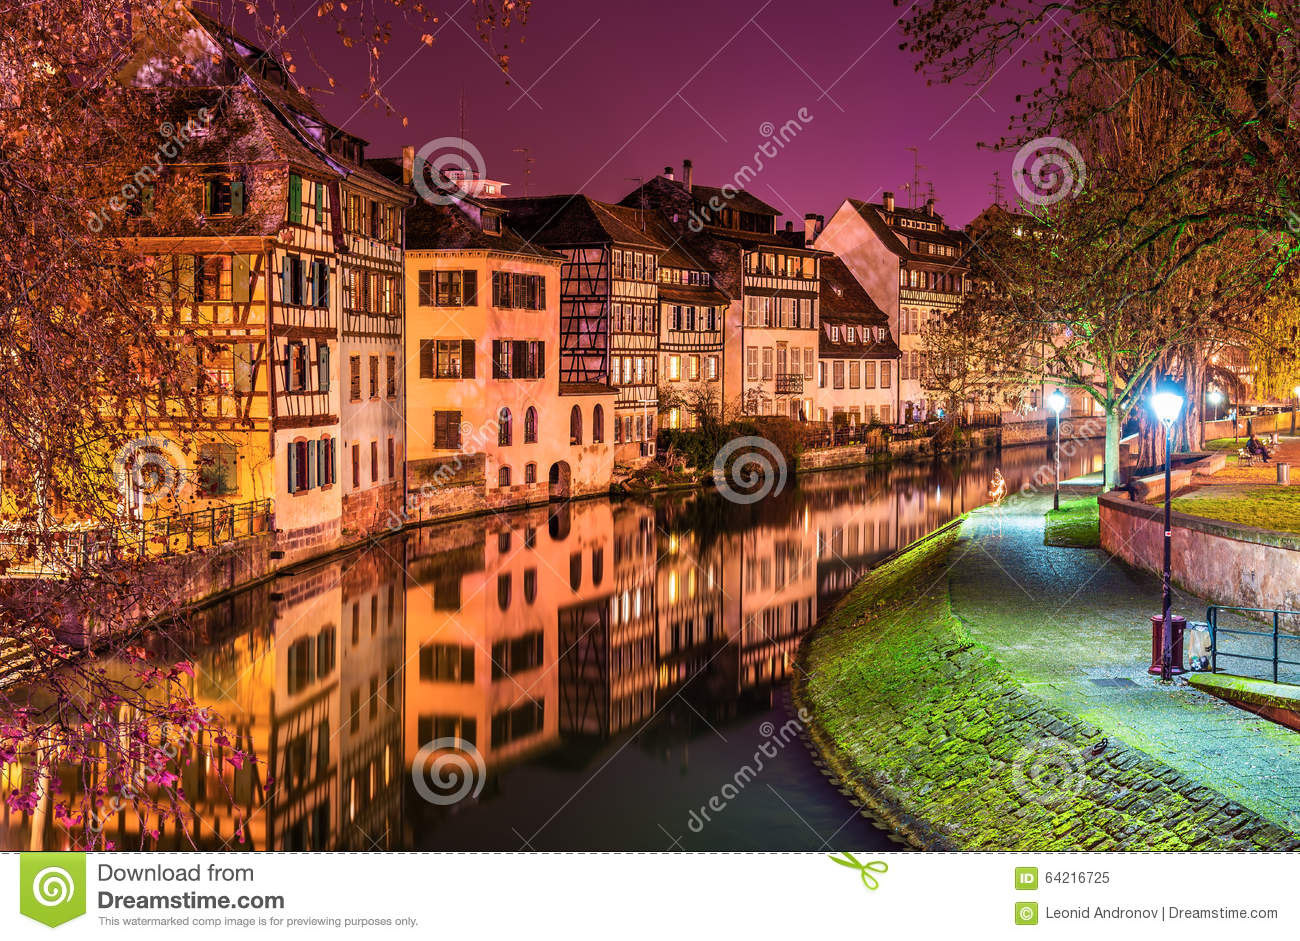 the ill river in petite france area strasbourg stock photo image 64216725. Black Bedroom Furniture Sets. Home Design Ideas